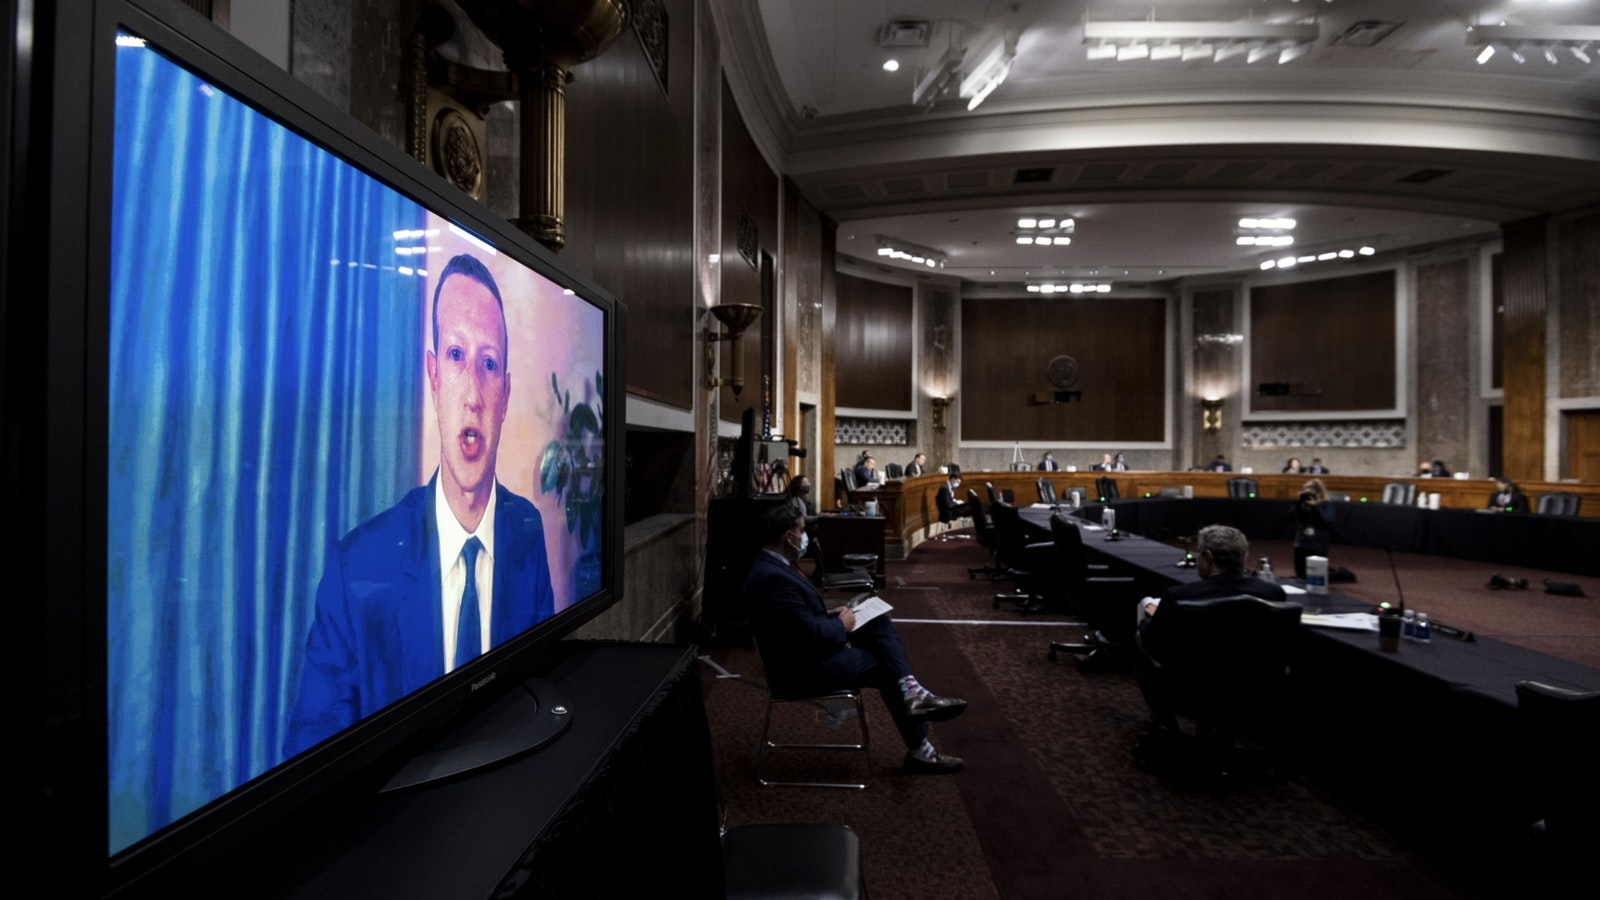 Facebook CEO Mark Zuckerberg appearing at the Judiciary Committee hearing today. Photo by Bloomberg.